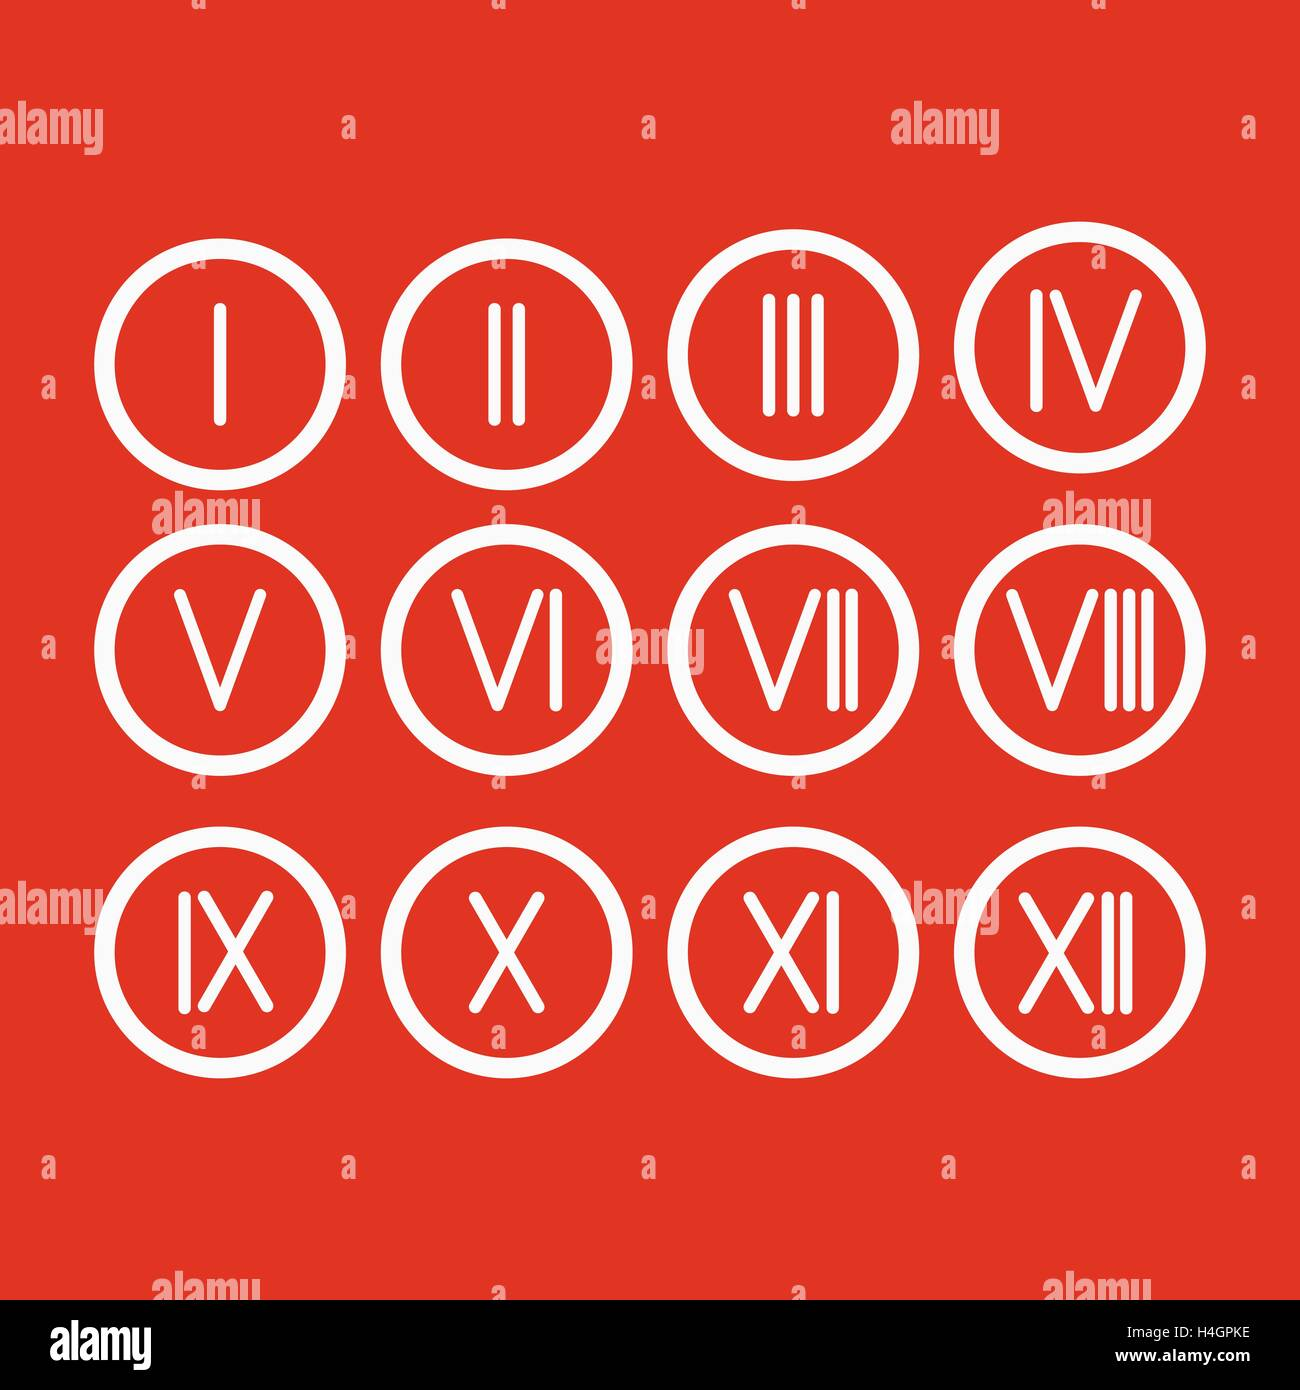 Set roman numerals 1 12 icon stock vector art illustration vector set roman numerals 1 12 icon altavistaventures Image collections